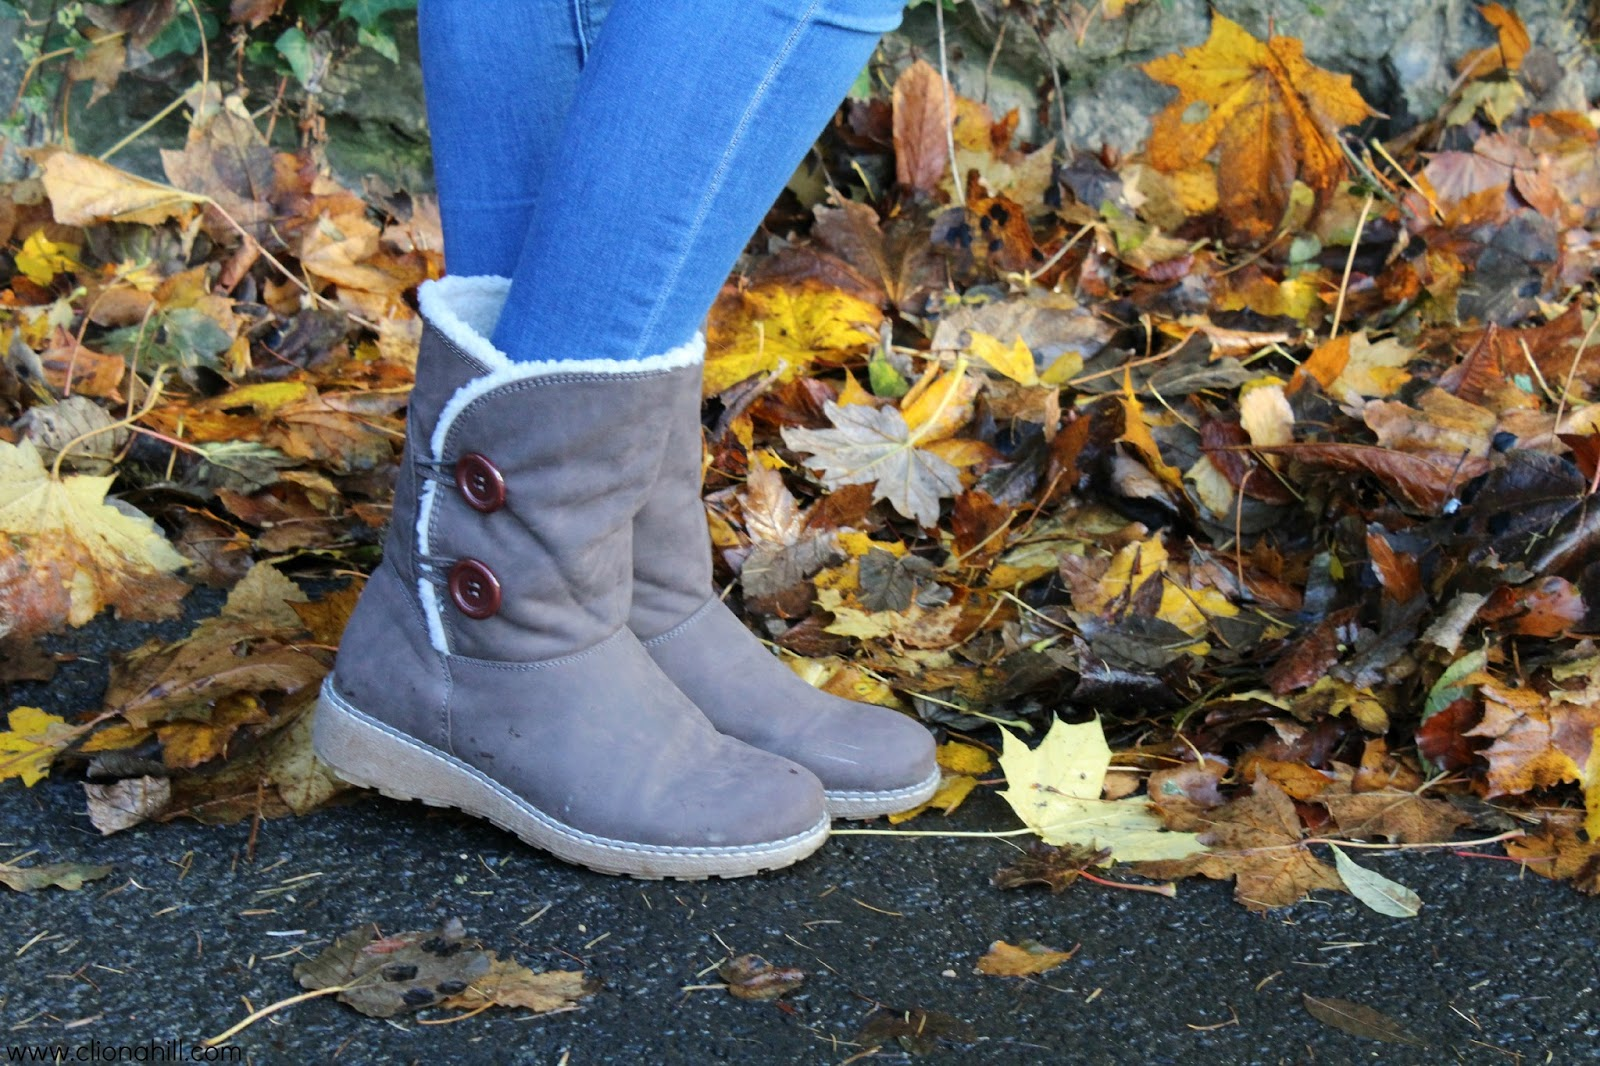 Autumn/Winter boots